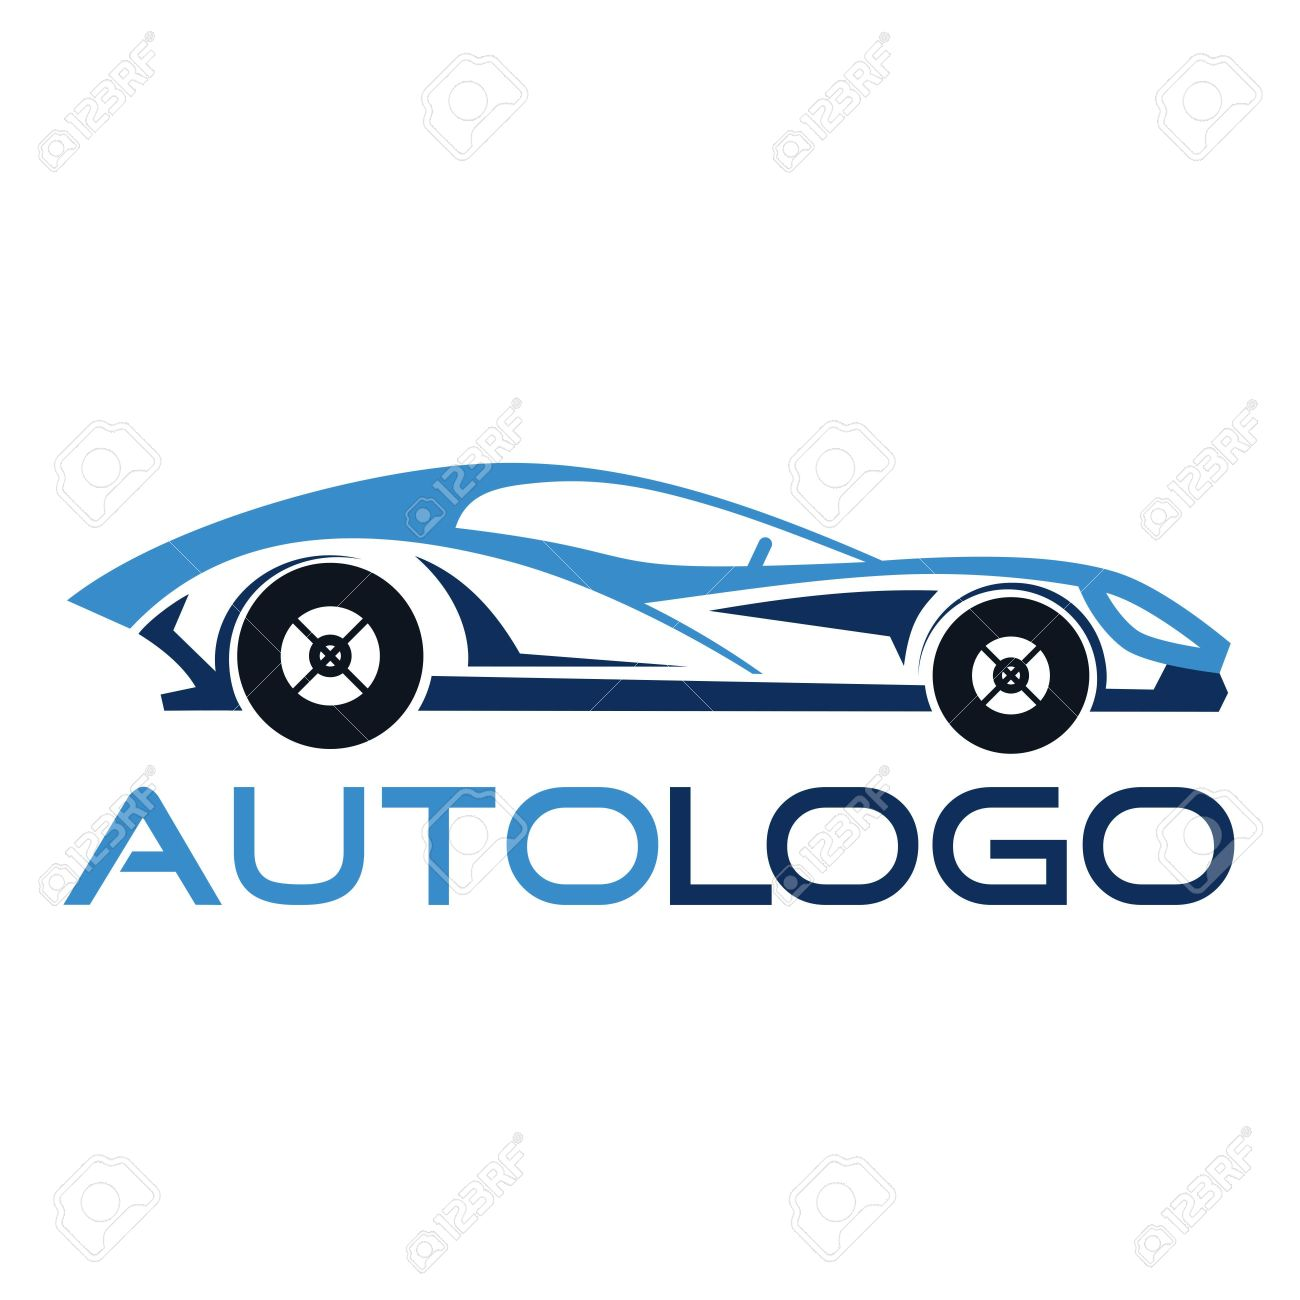 Automotive Car Logo Template Stock Photo Picture And Royalty Free